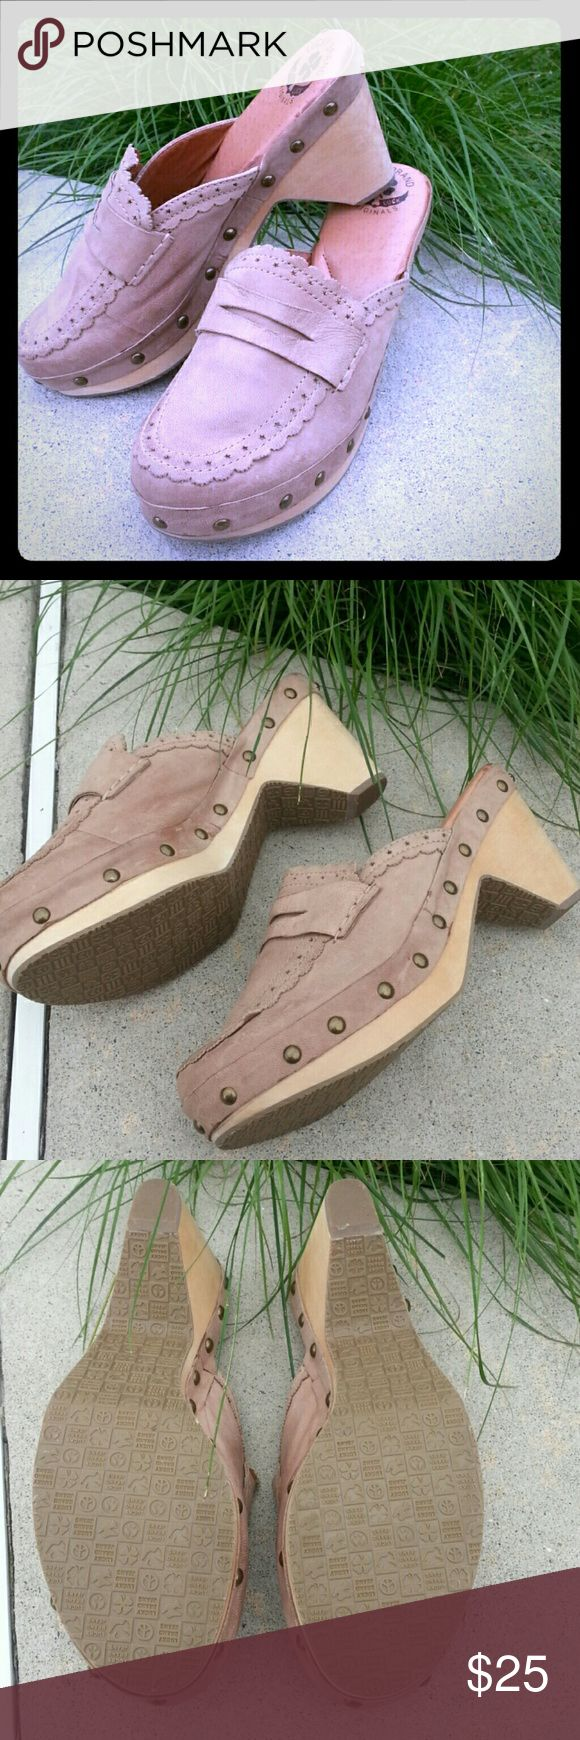 LUCKY BRAND modern clogs Leather upper, manmade sole. Bronze studs around each clog. Very SOFT footbeds. Comfy! Great used condition. Barely worn. Lucky Brand Shoes